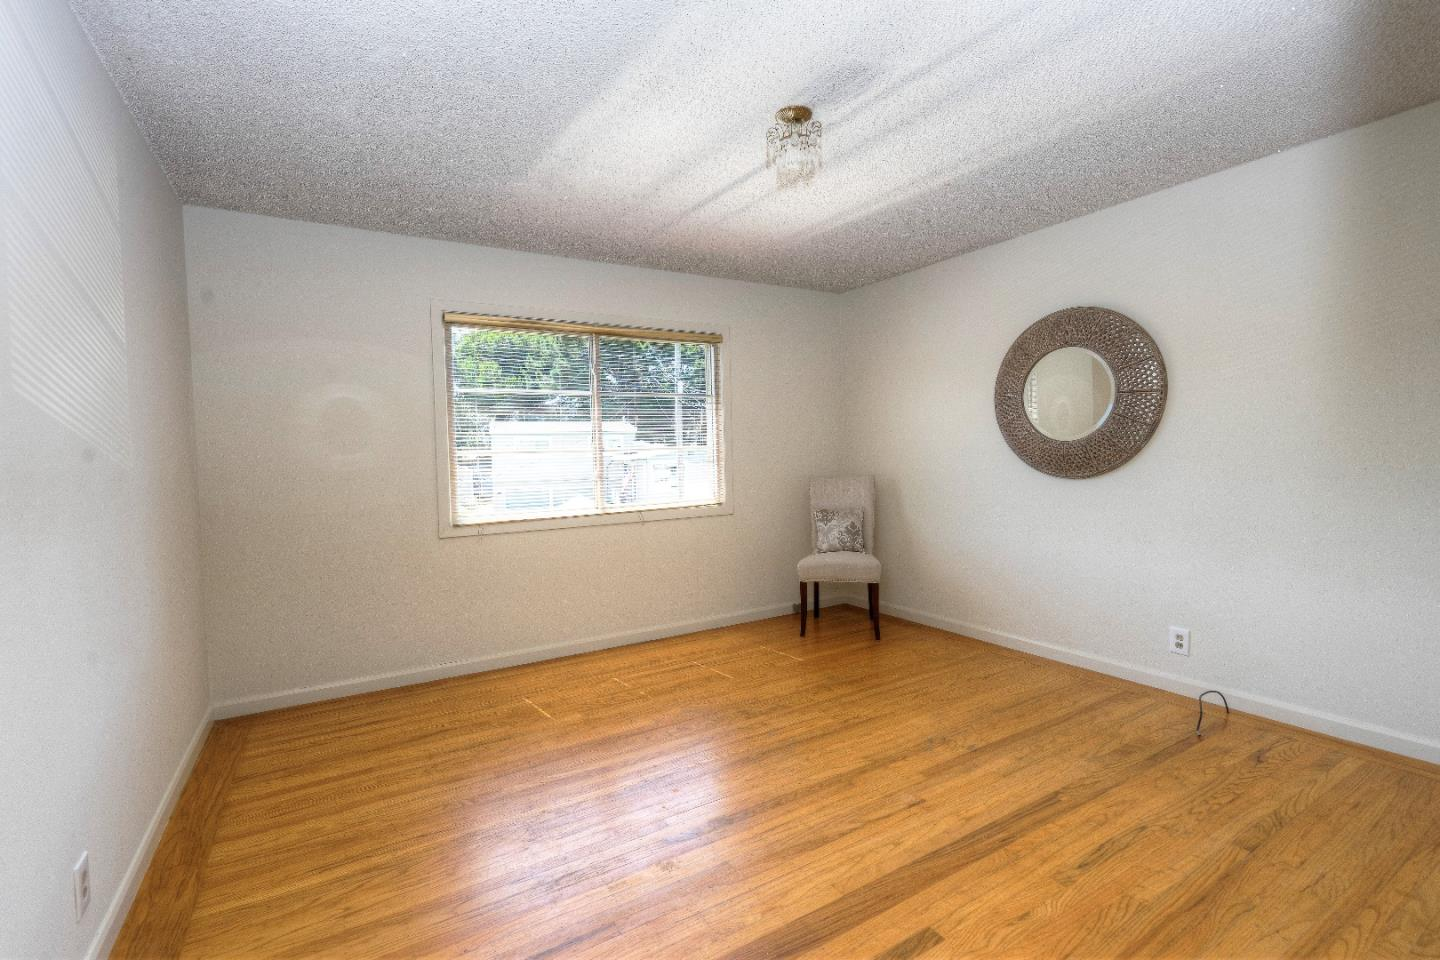 Additional photo for property listing at 25 Conrad Court  South San Francisco, カリフォルニア 94080 アメリカ合衆国